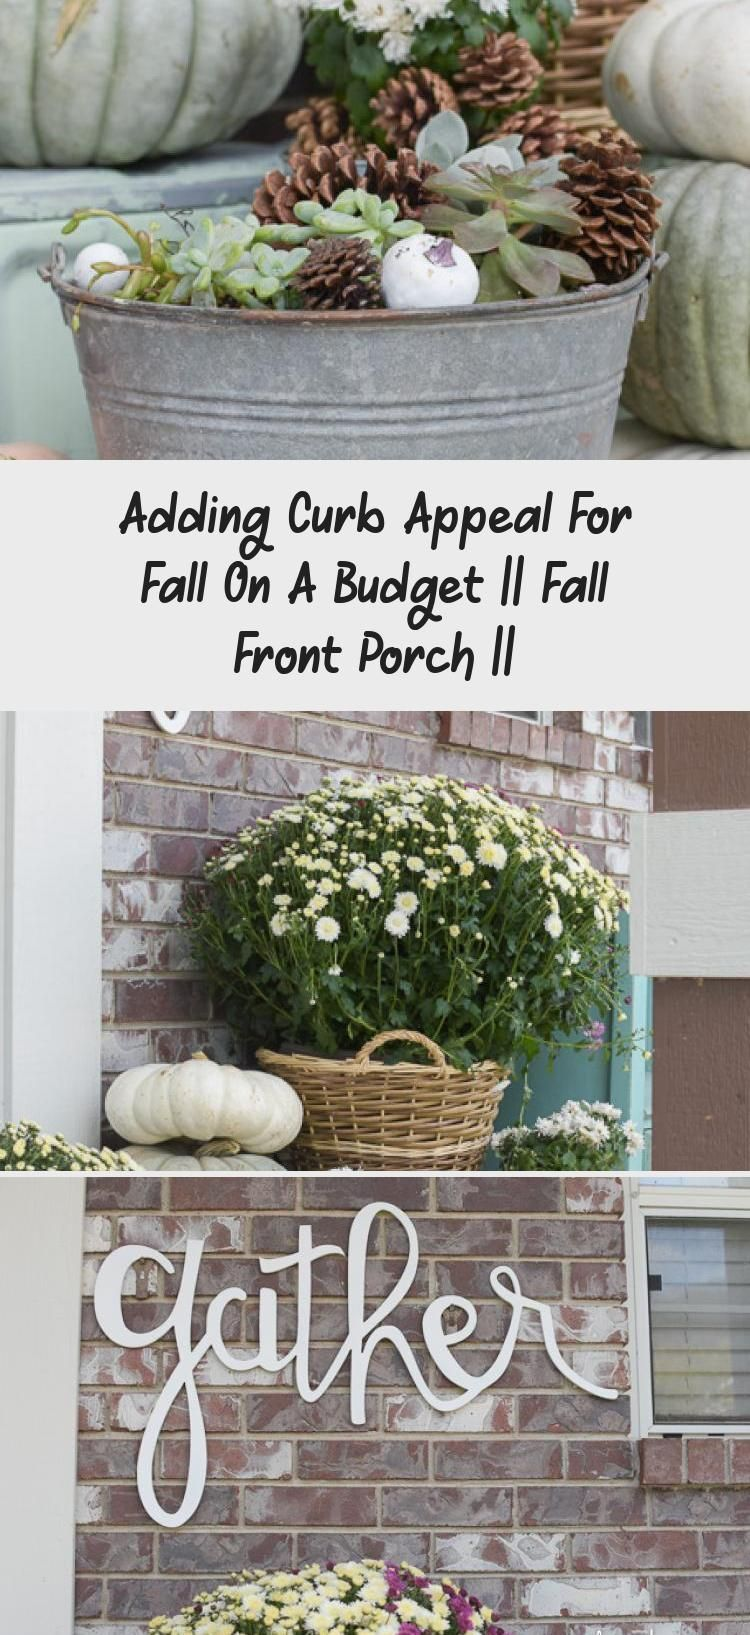 Adding Curb Appeal For Fall On A Budget || Fall Front Porch || #frontporchideascurbappeal Adding Curb Appeal for Fall on a Budget || Fall Front Porch || With Heirloom Pumpkins, Mums and Succulents || Gather Cutout By Start at Home Decor #fallhomedecorCenterpieces #fallhomedecorOutdoor #fallhomedecorChairs #Easyfallhomedecor #fallhomedecorPorch #frontporchideascurbappeal Adding Curb Appeal For Fall On A Budget || Fall Front Porch || #frontporchideascurbappeal Adding Curb Appeal for Fall on a Budg #frontporchideascurbappeal